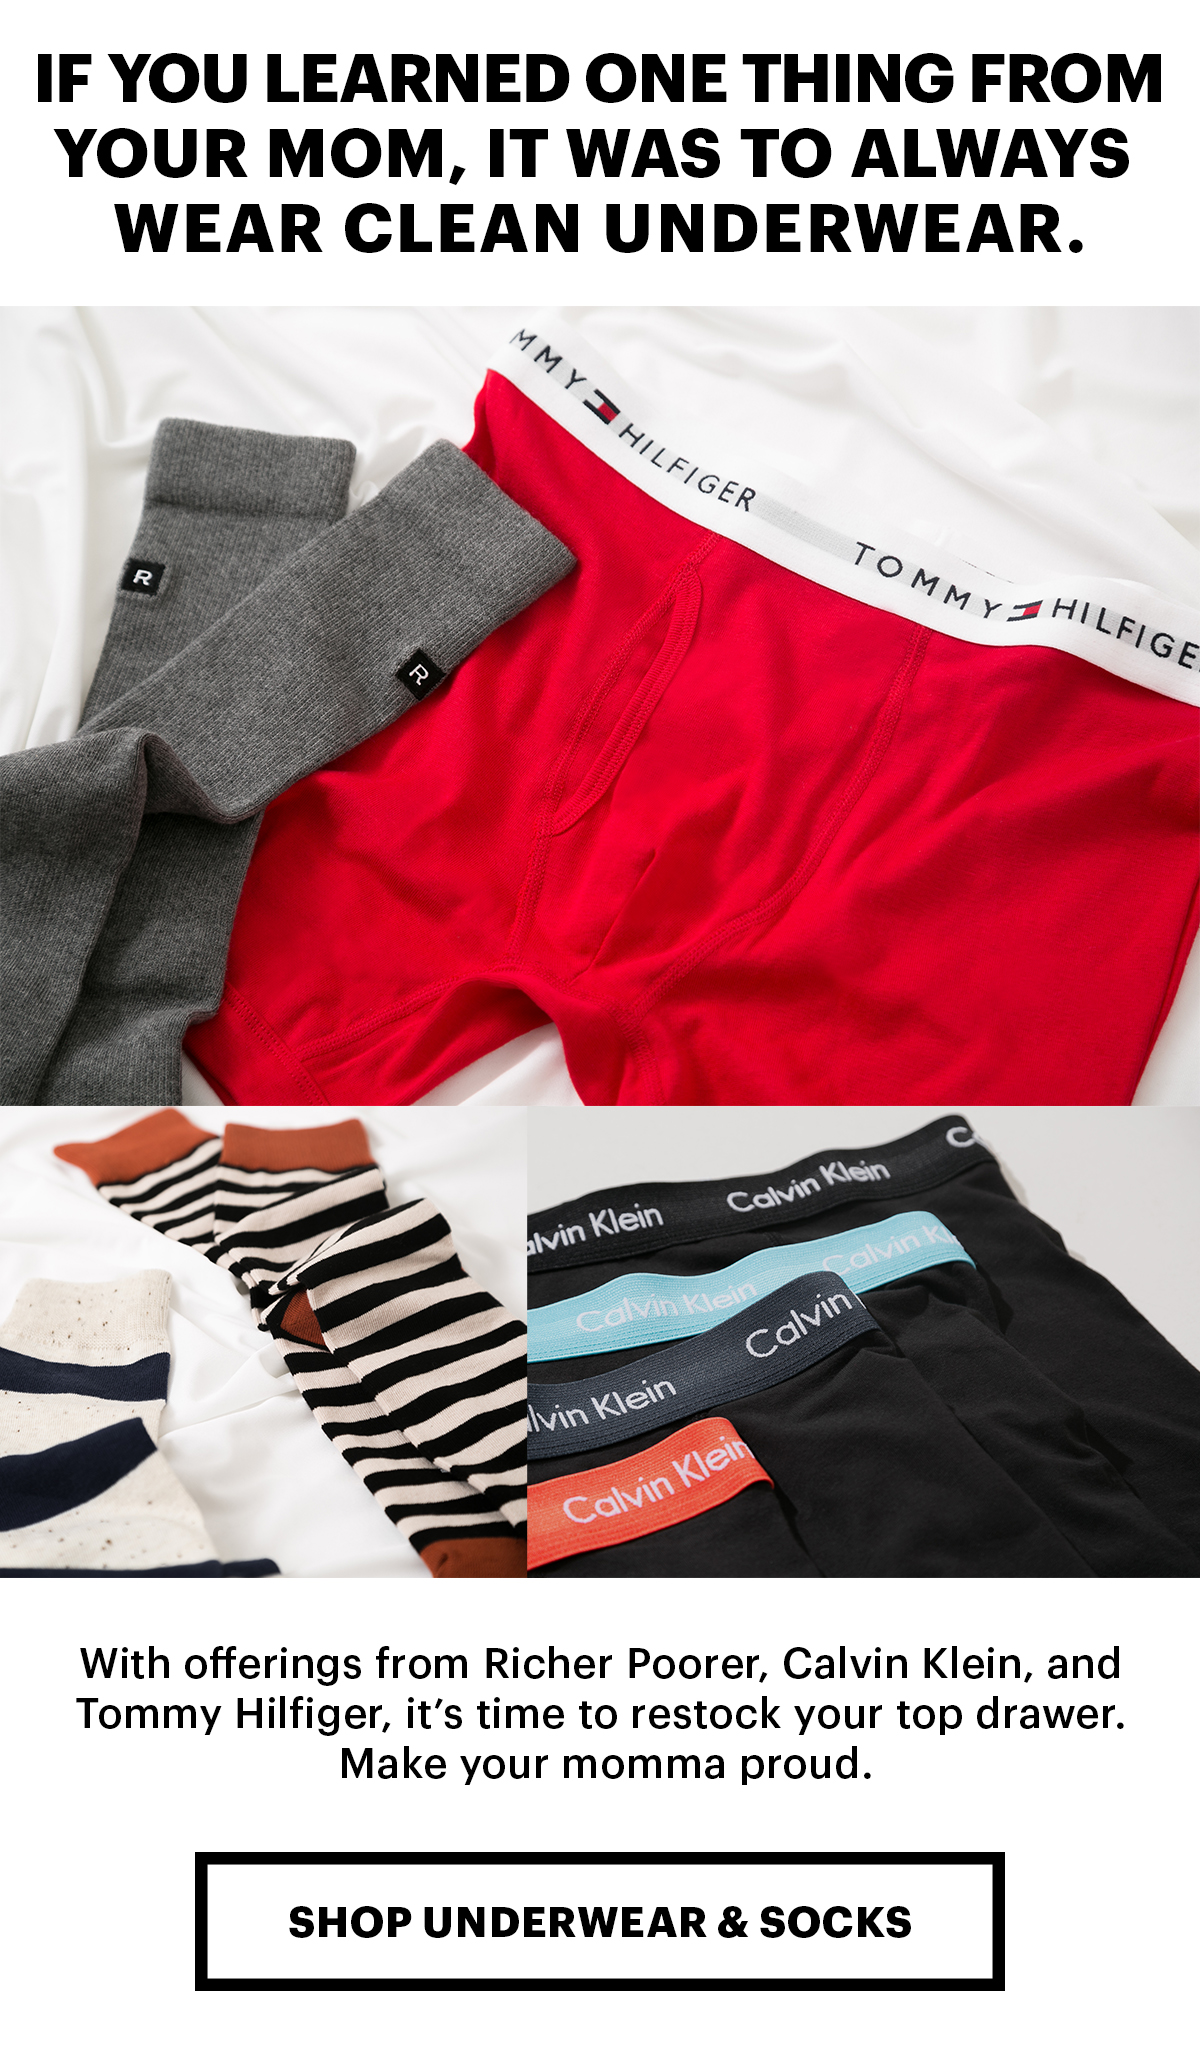 If you learned one thing from your mom, it was to always wear clean underwear. With offerings from Richer Poorer, Calvin Klein, and Tommy Hilfiger, it's time to restock your top drawer. Make your momma proud. | Shop Underwear and Socks